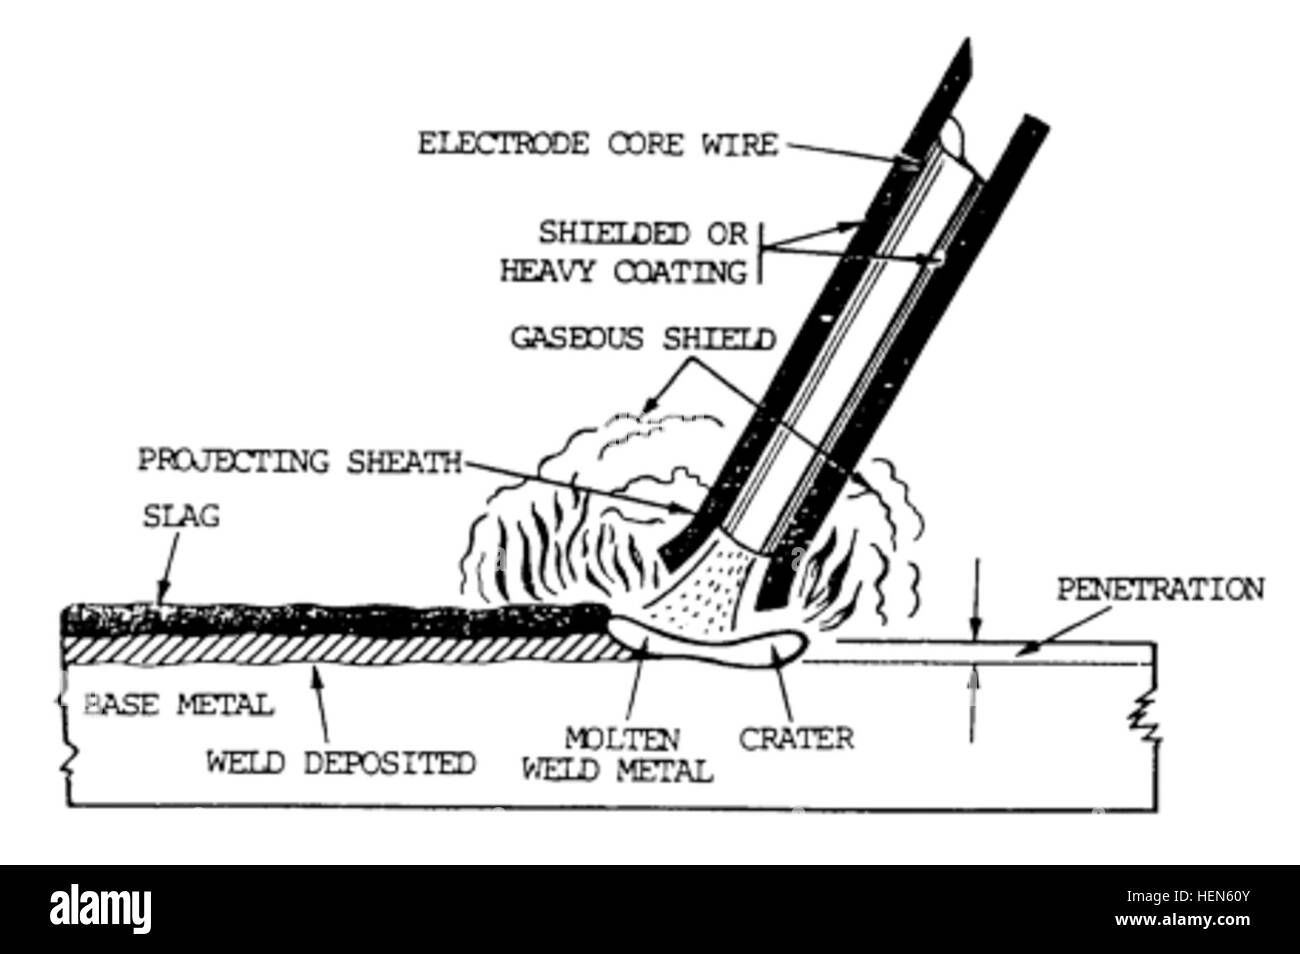 hight resolution of smaw weld area